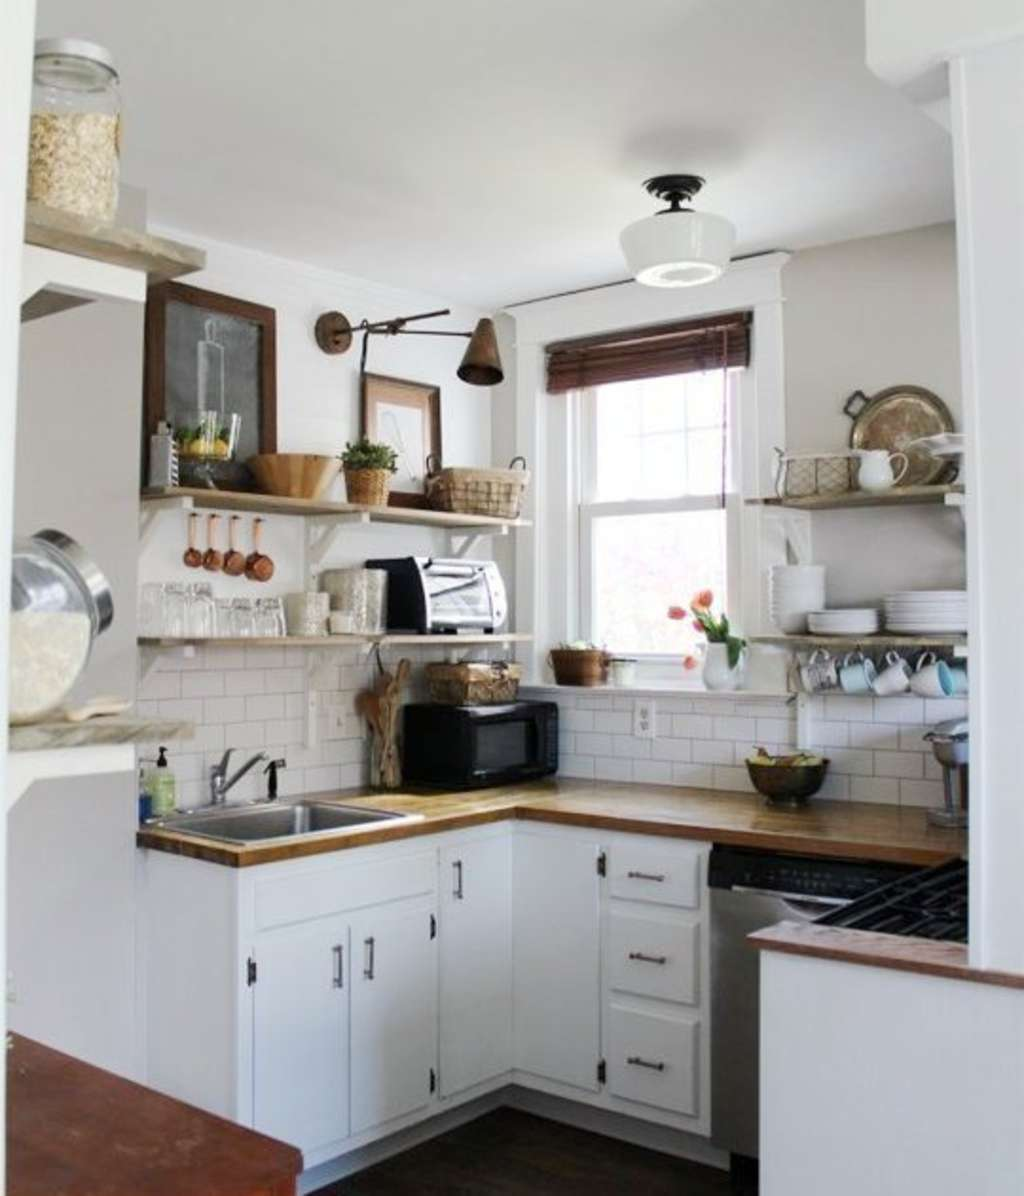 Kitchen Makeovers Before And After: 15 Kitchen Makeover Projects